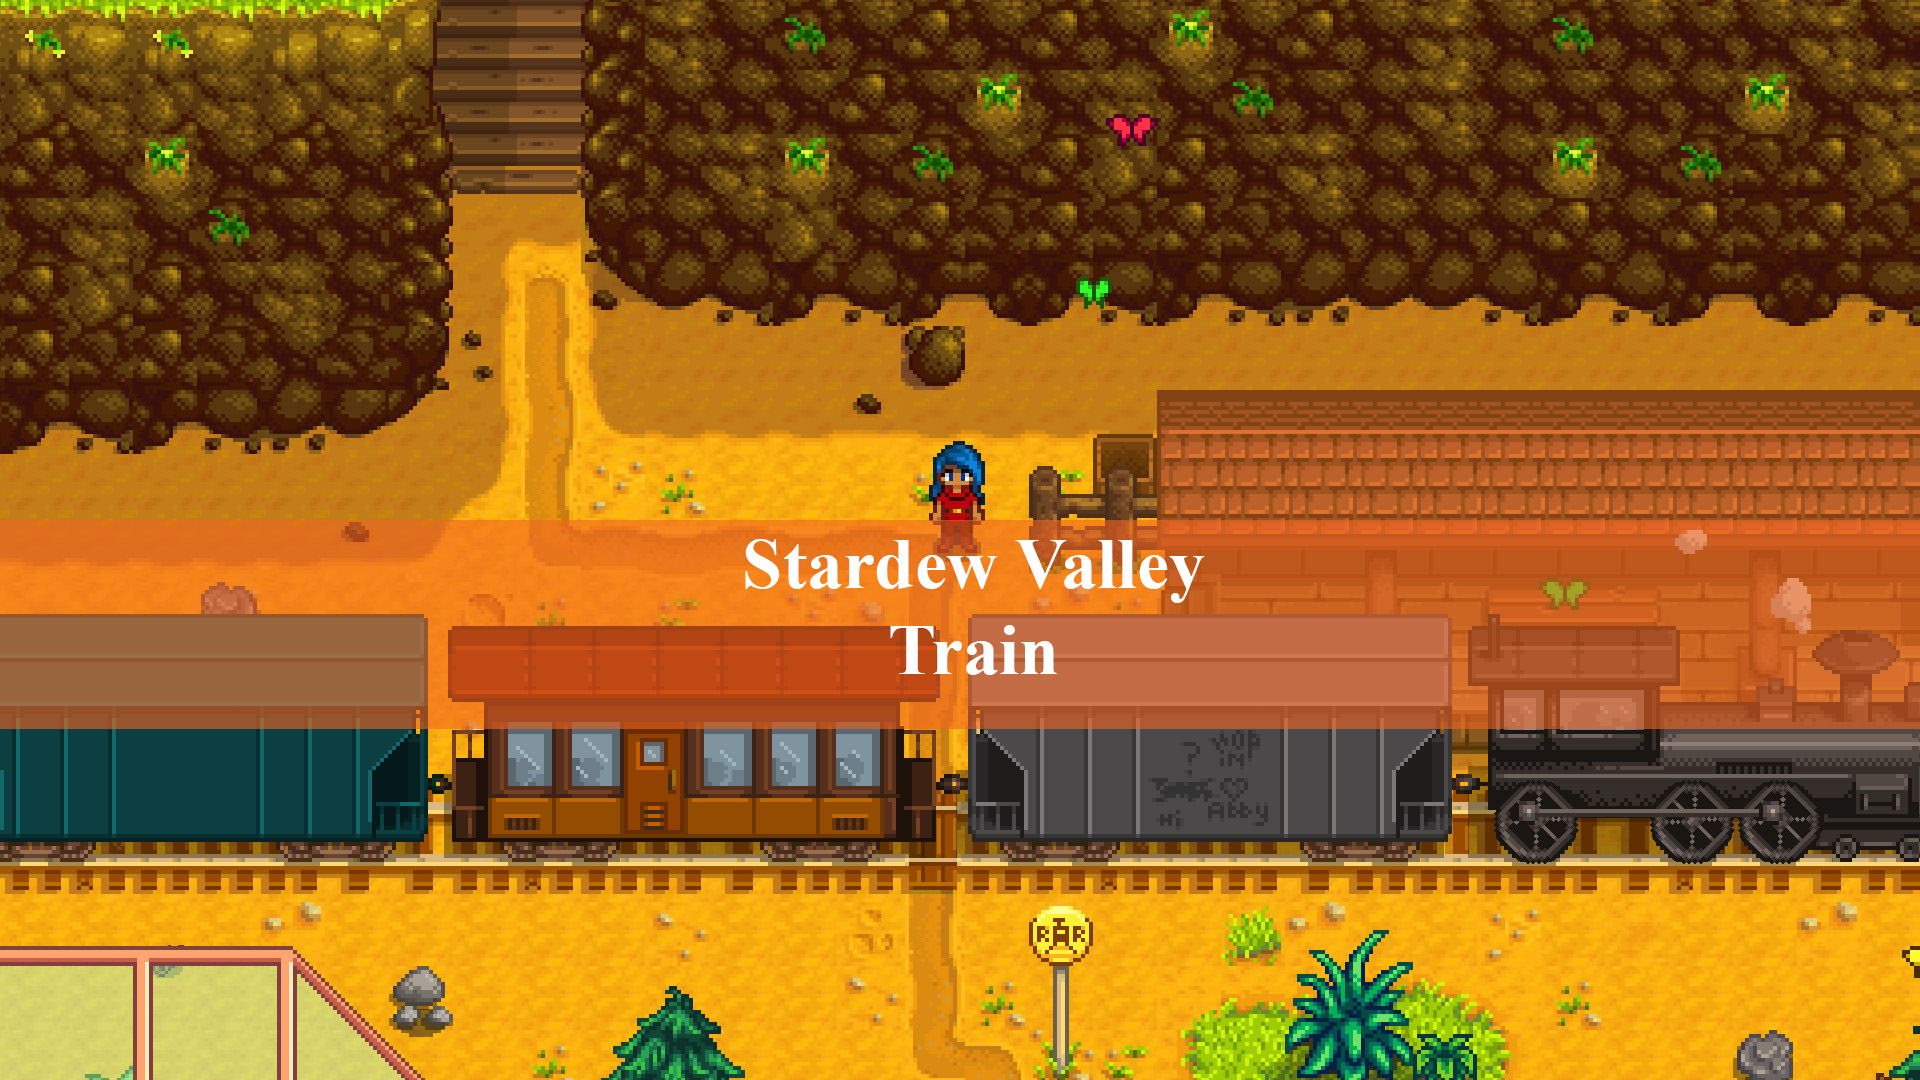 stardew valley train